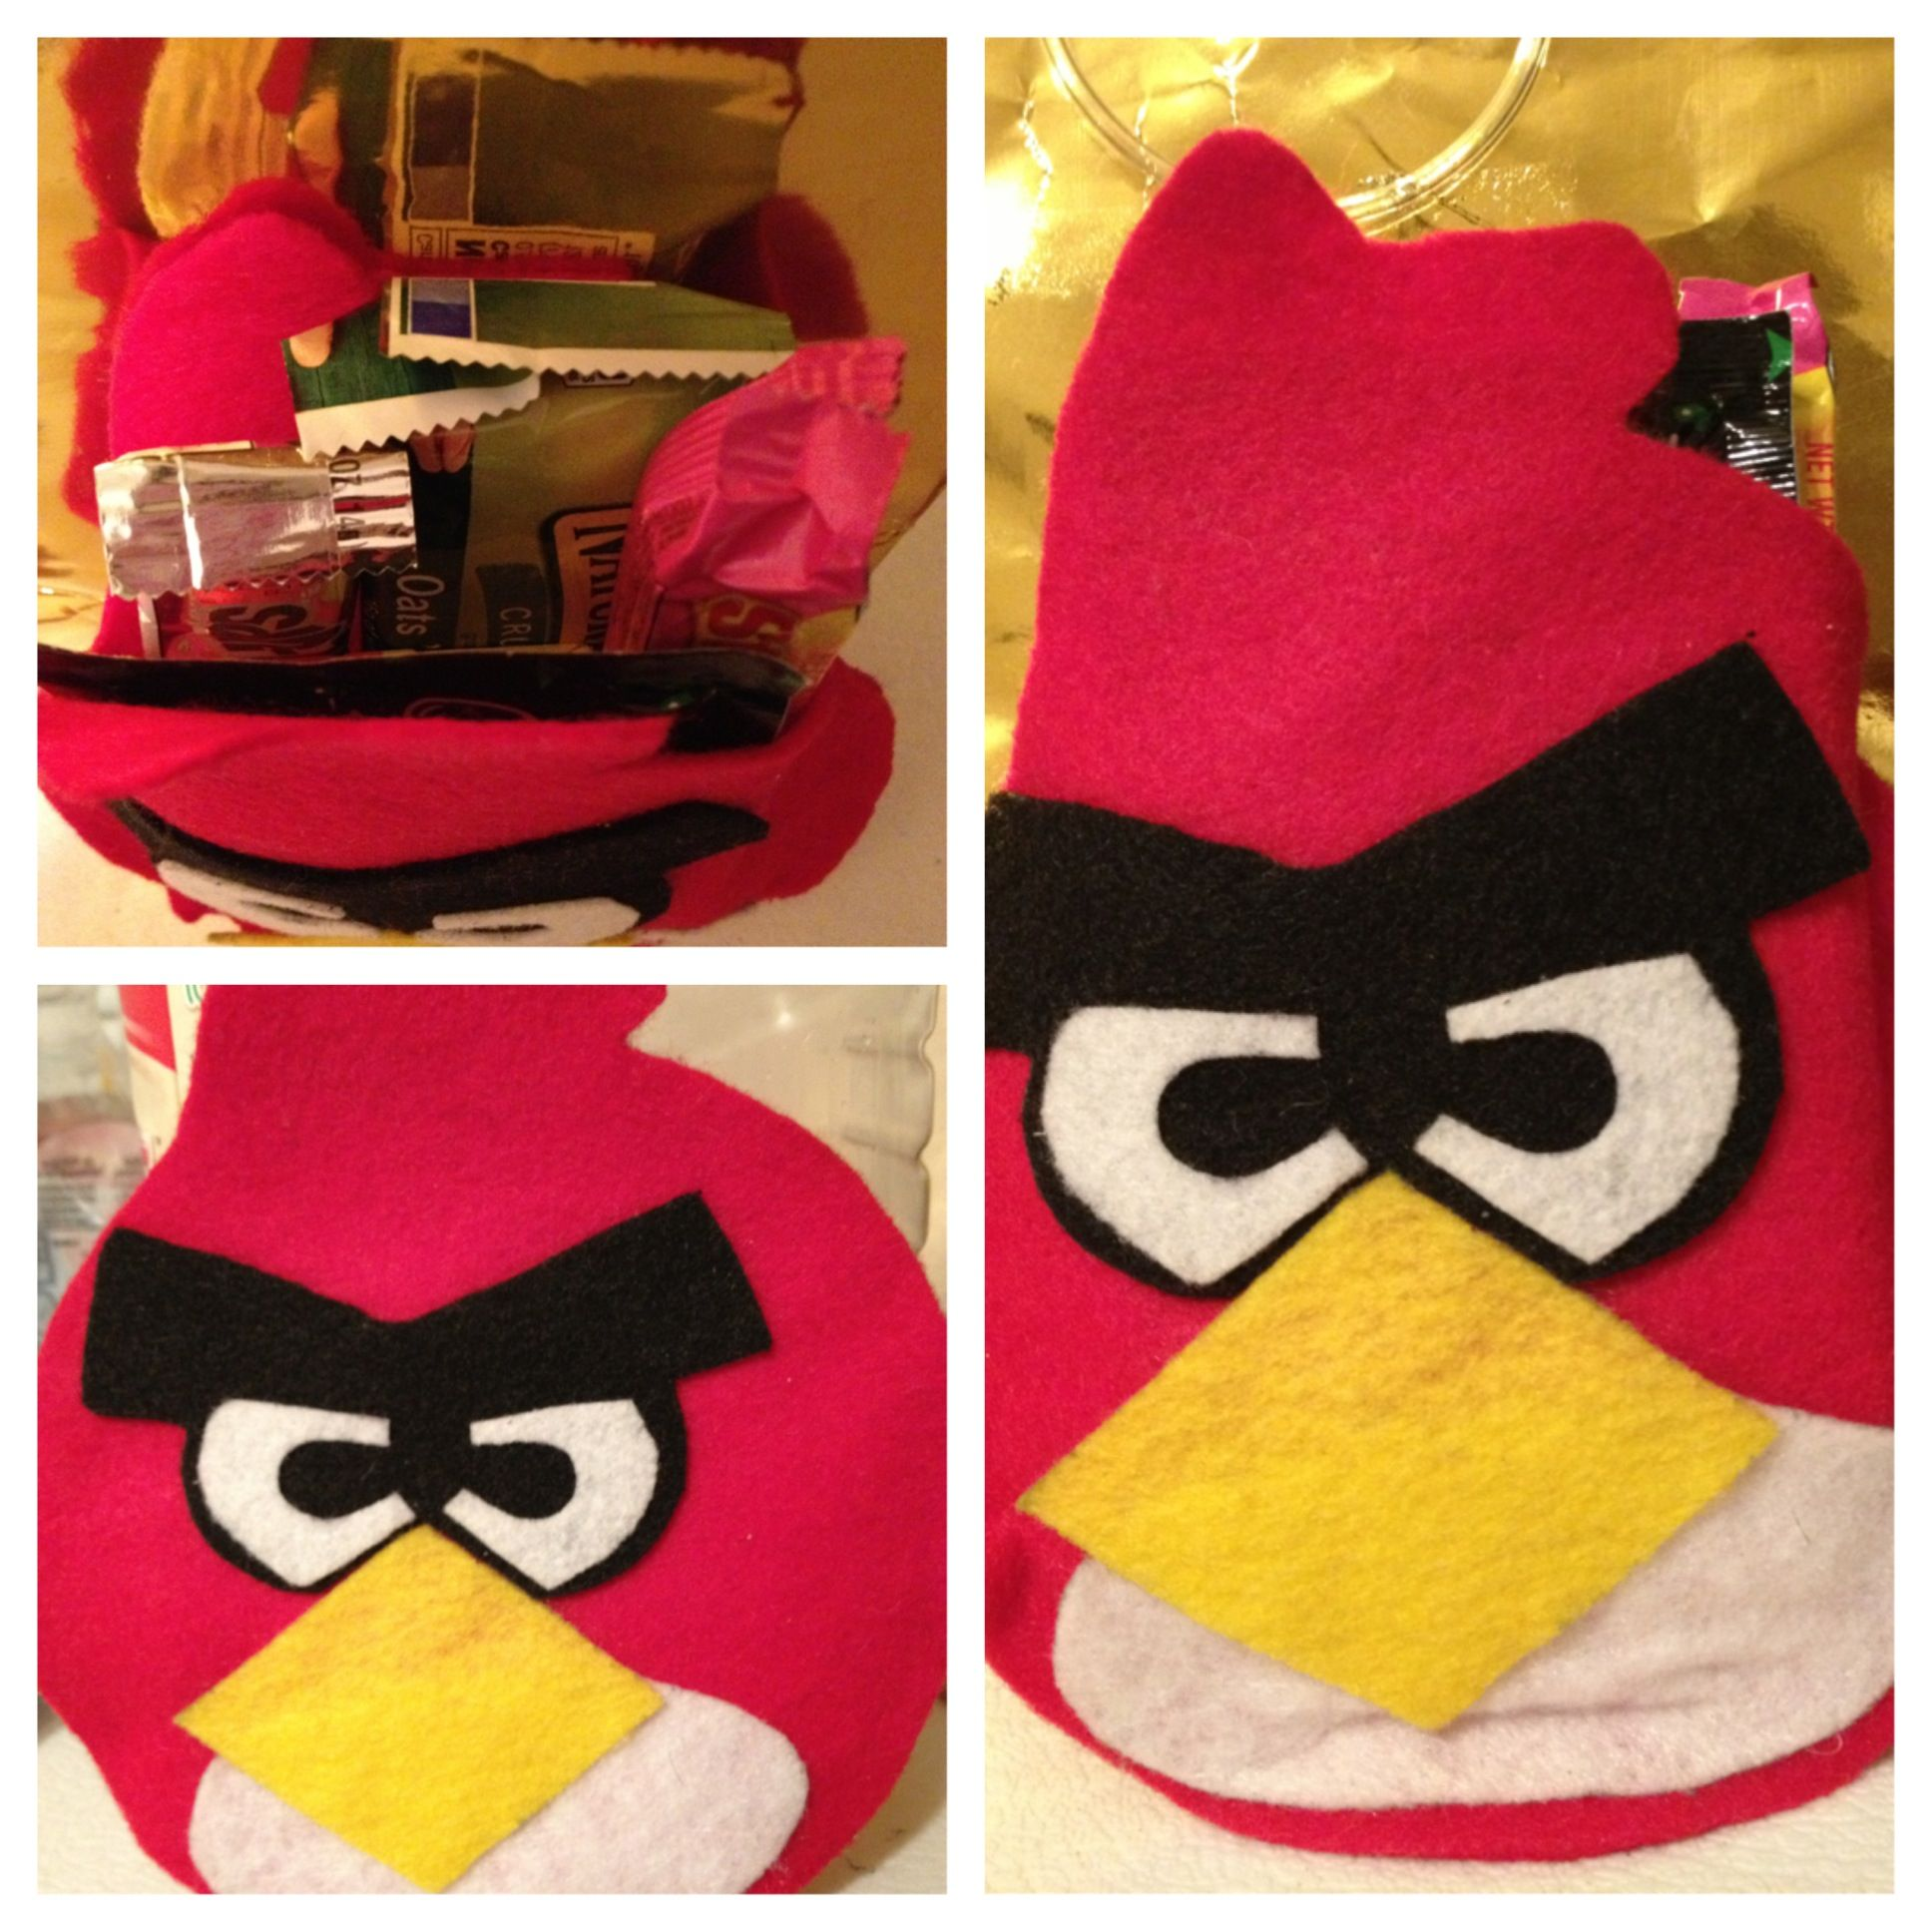 Angry Bird Goodie Bag made from felt